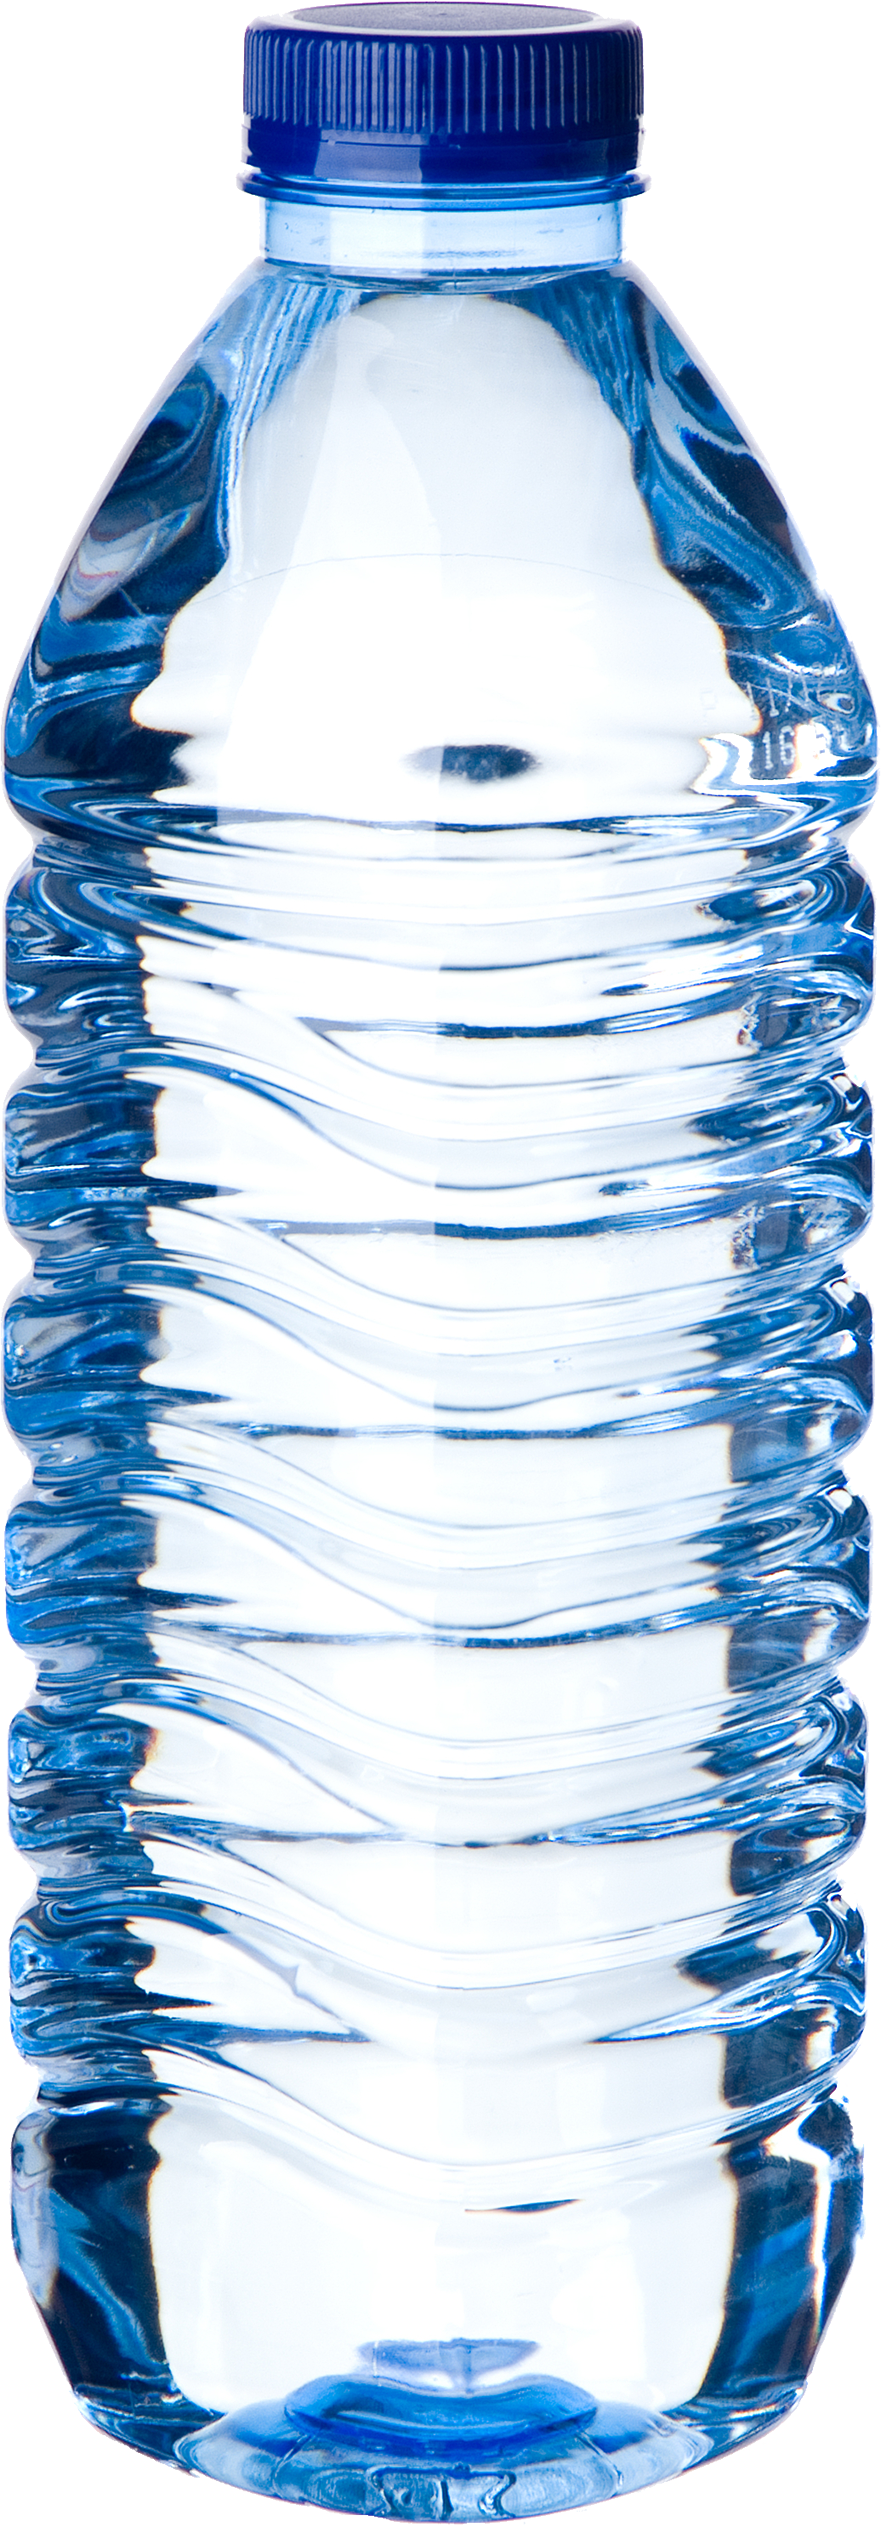 Water clipart distilled water. Bottle png images free